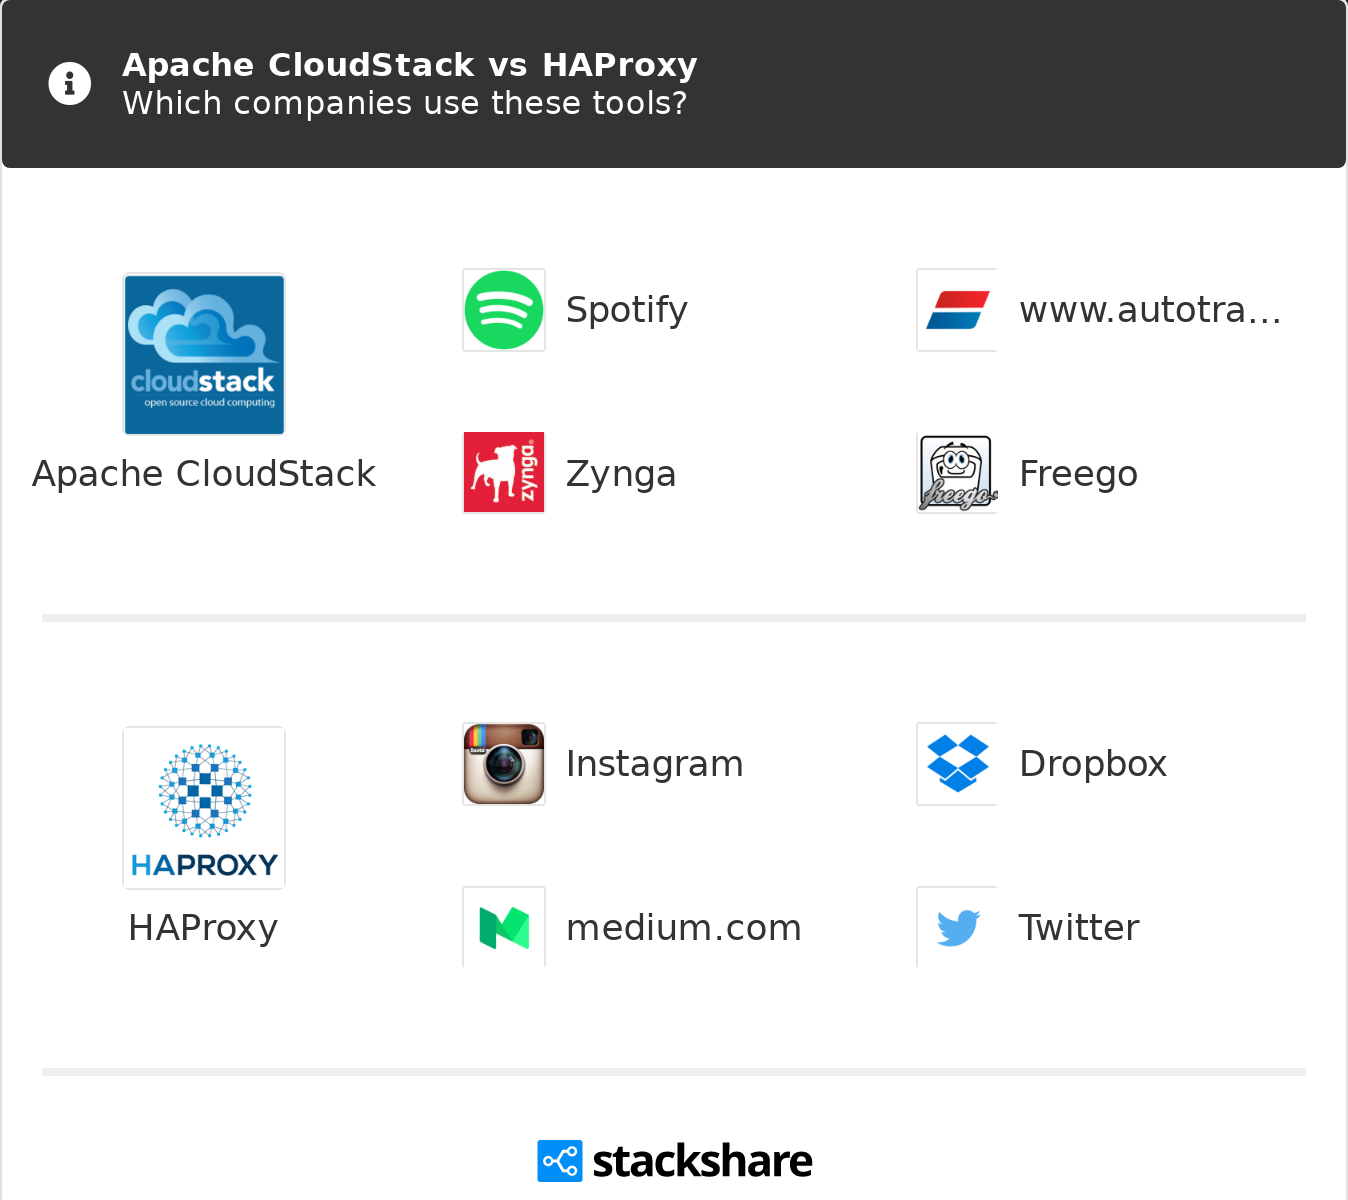 Apache CloudStack vs HAProxy | What are the differences?